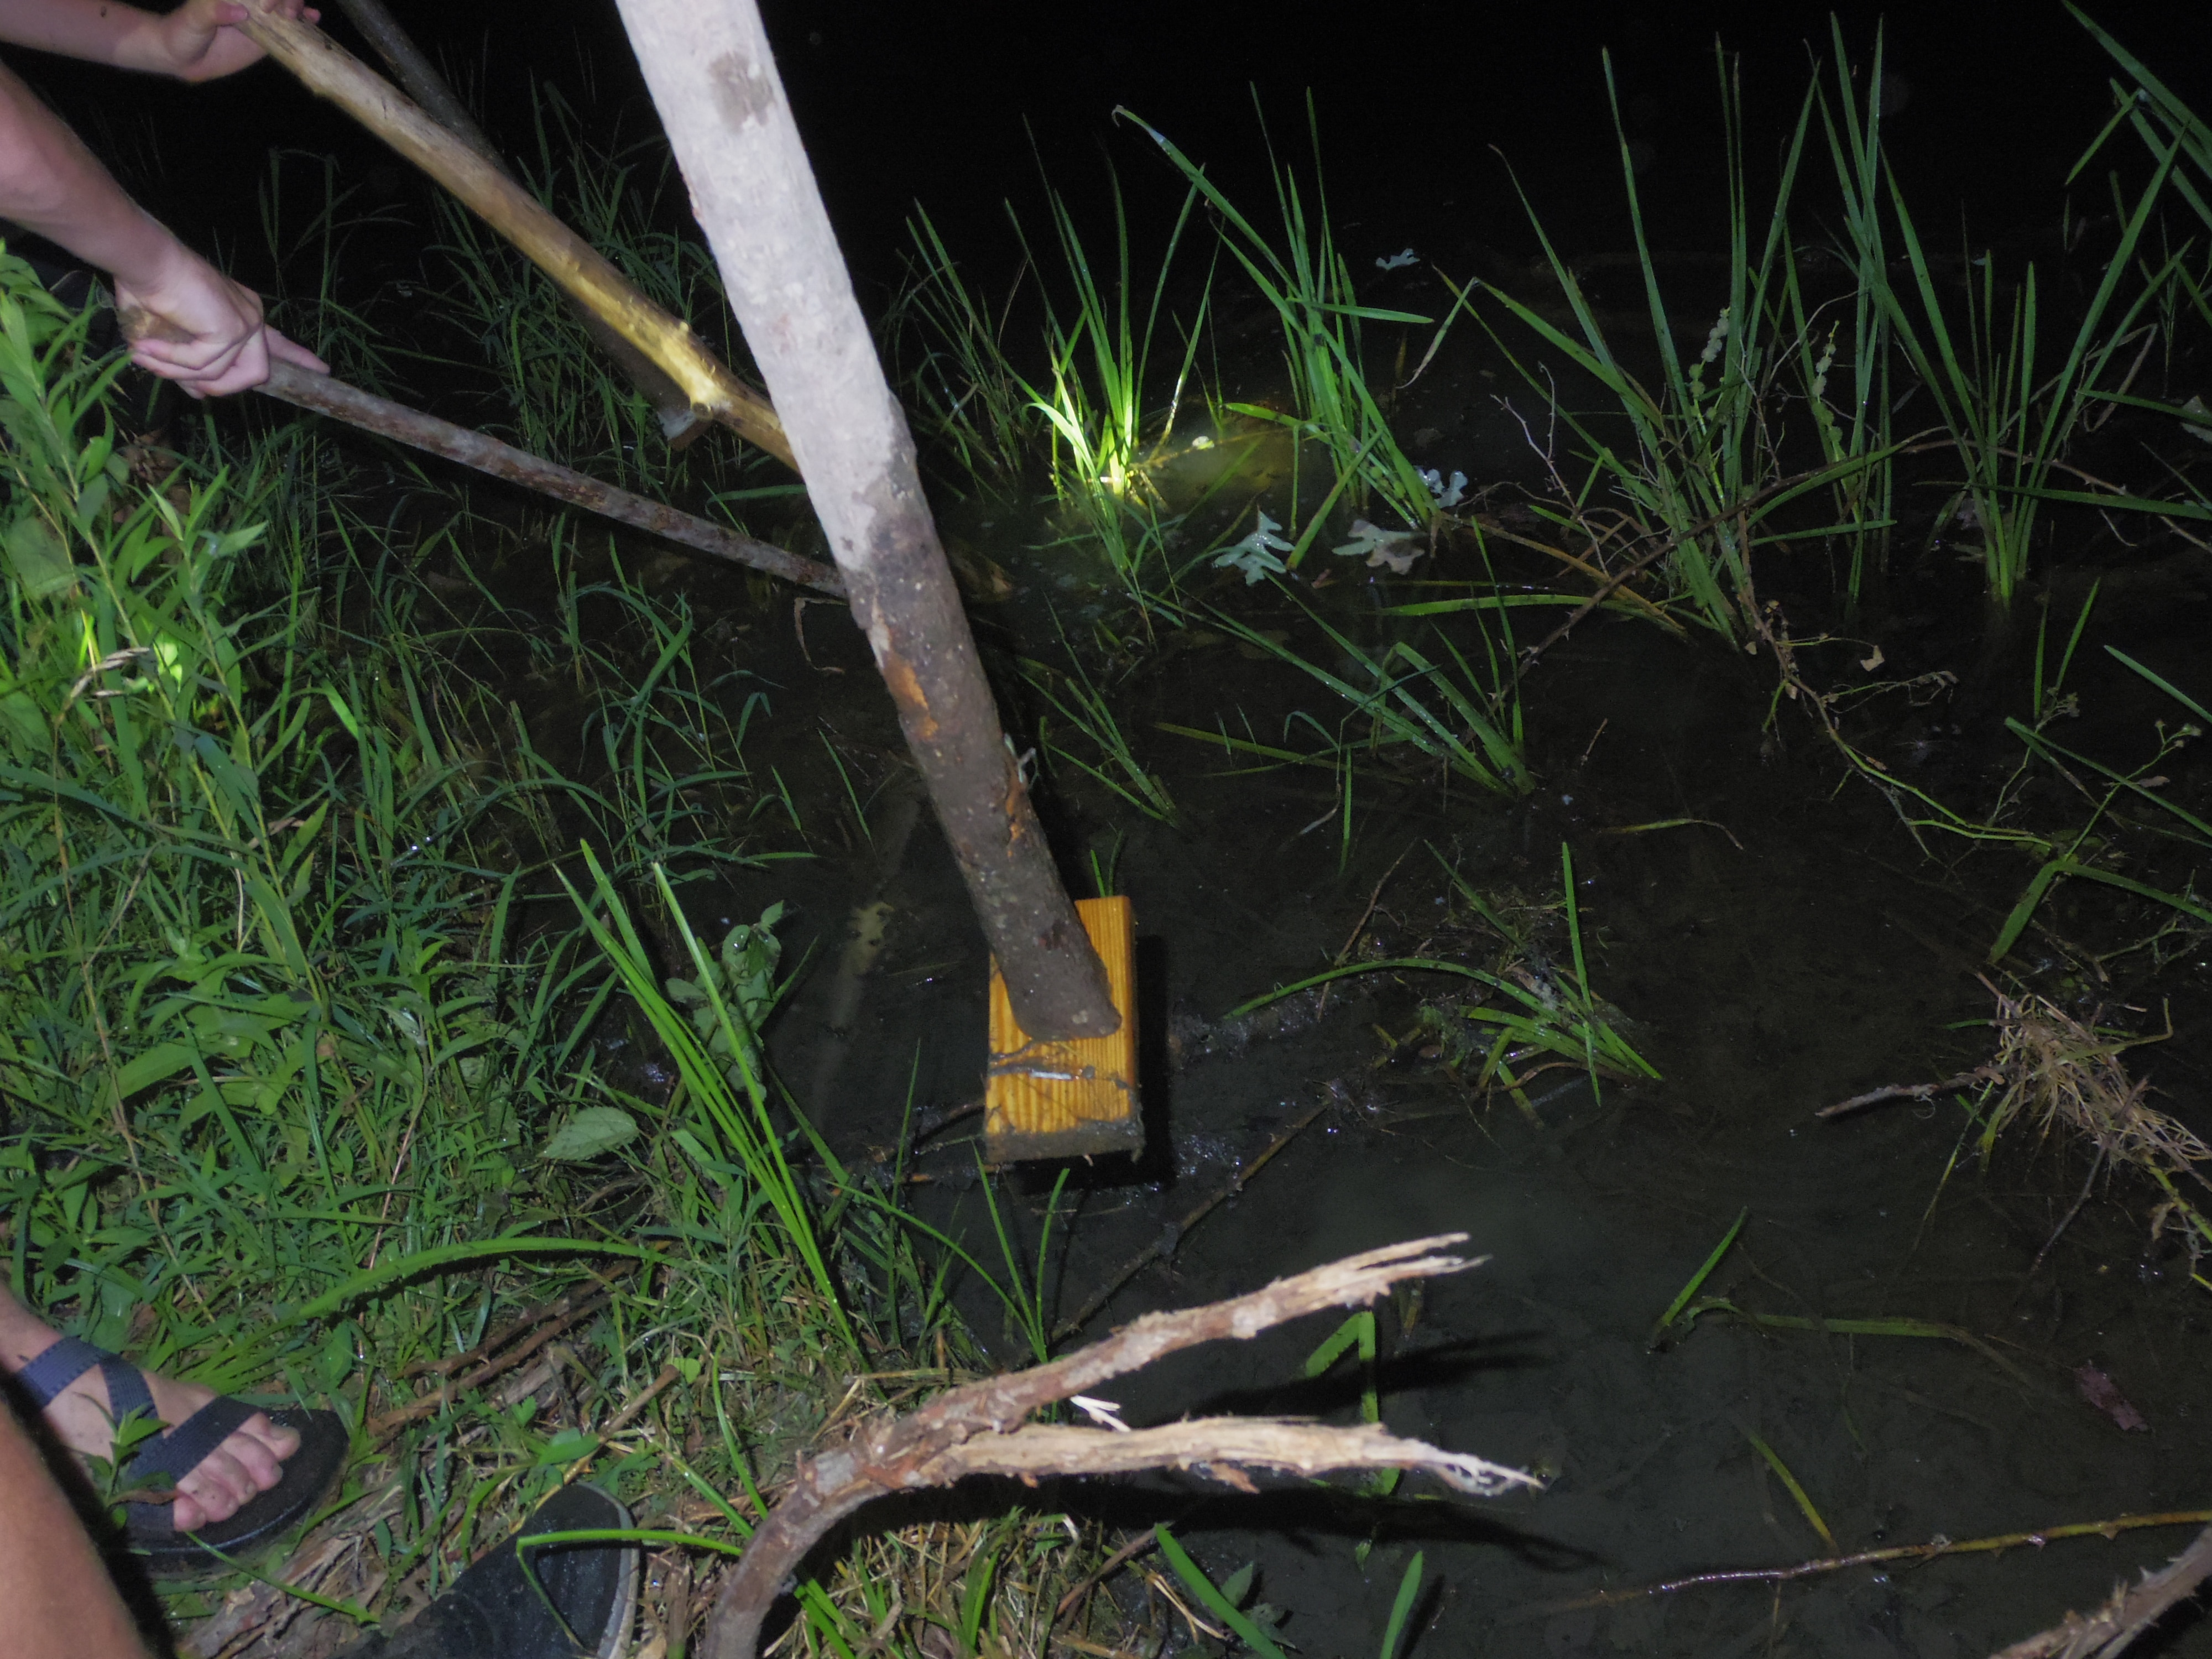 Frog gigging with homemade frog gigs